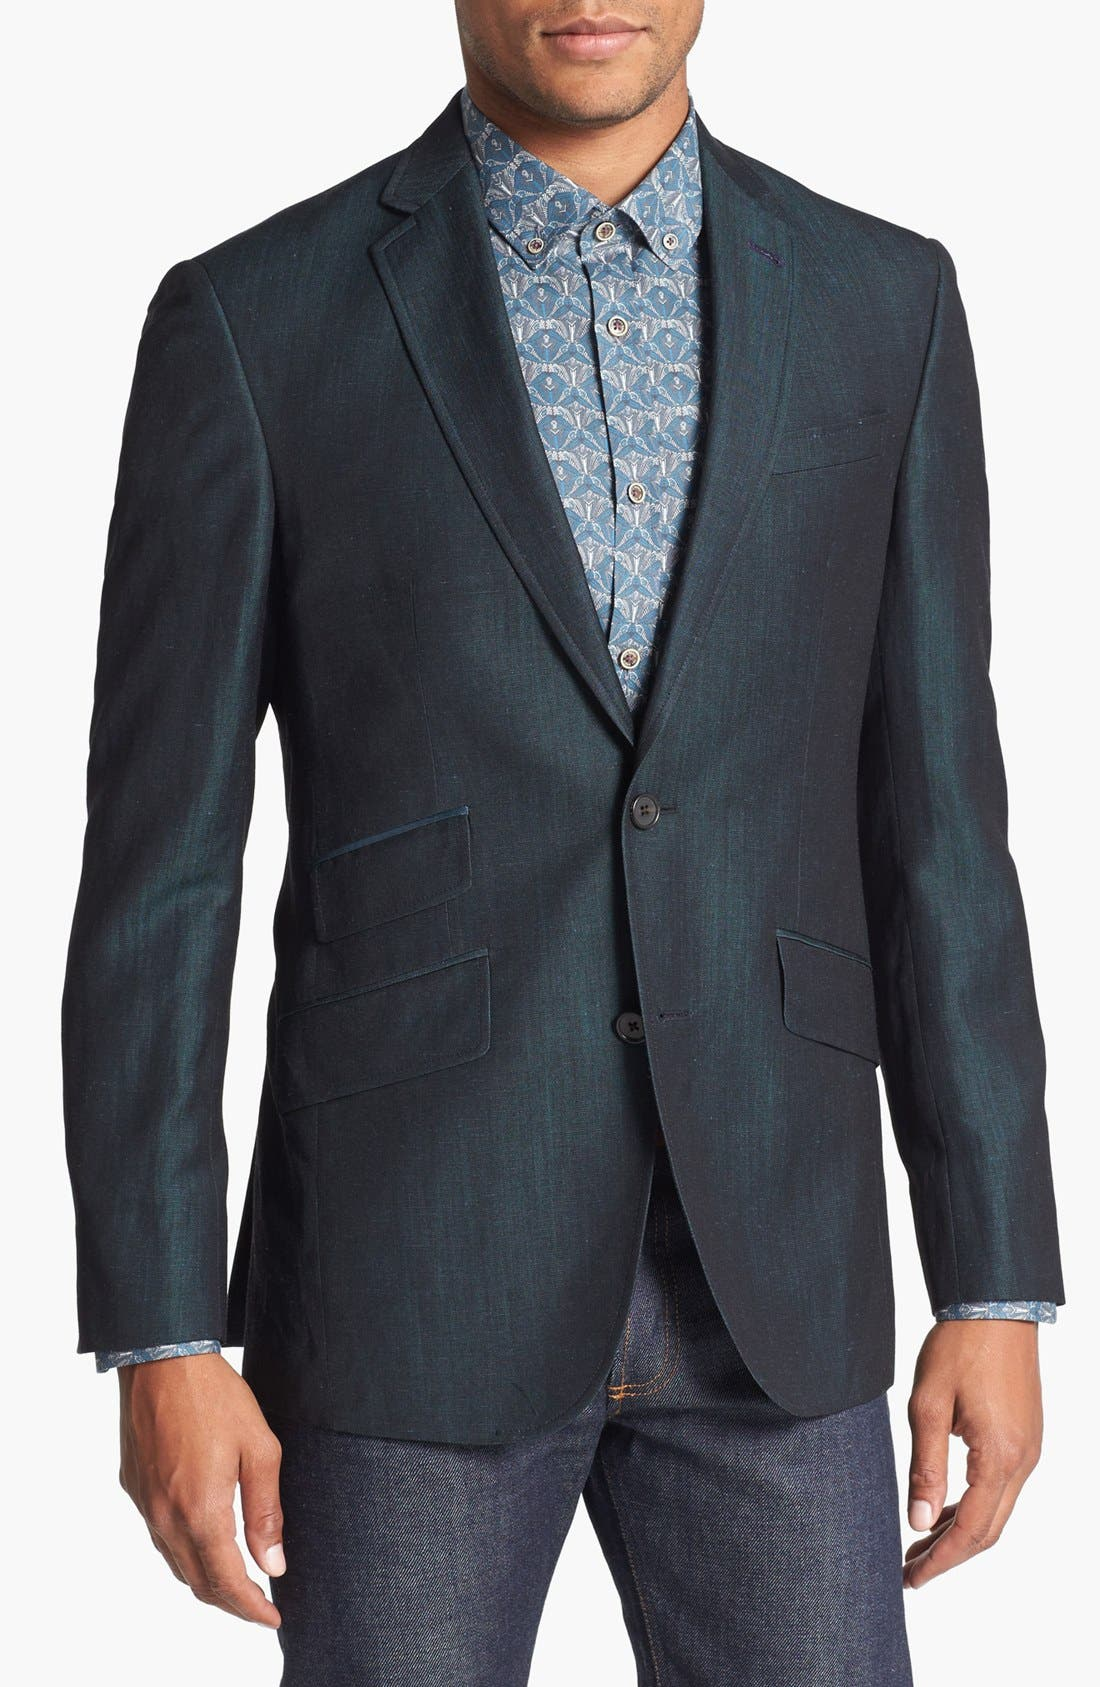 Alternate Image 1 Selected - Ted Baker London 'Tram' Trim Fit Microcheck Sportcoat